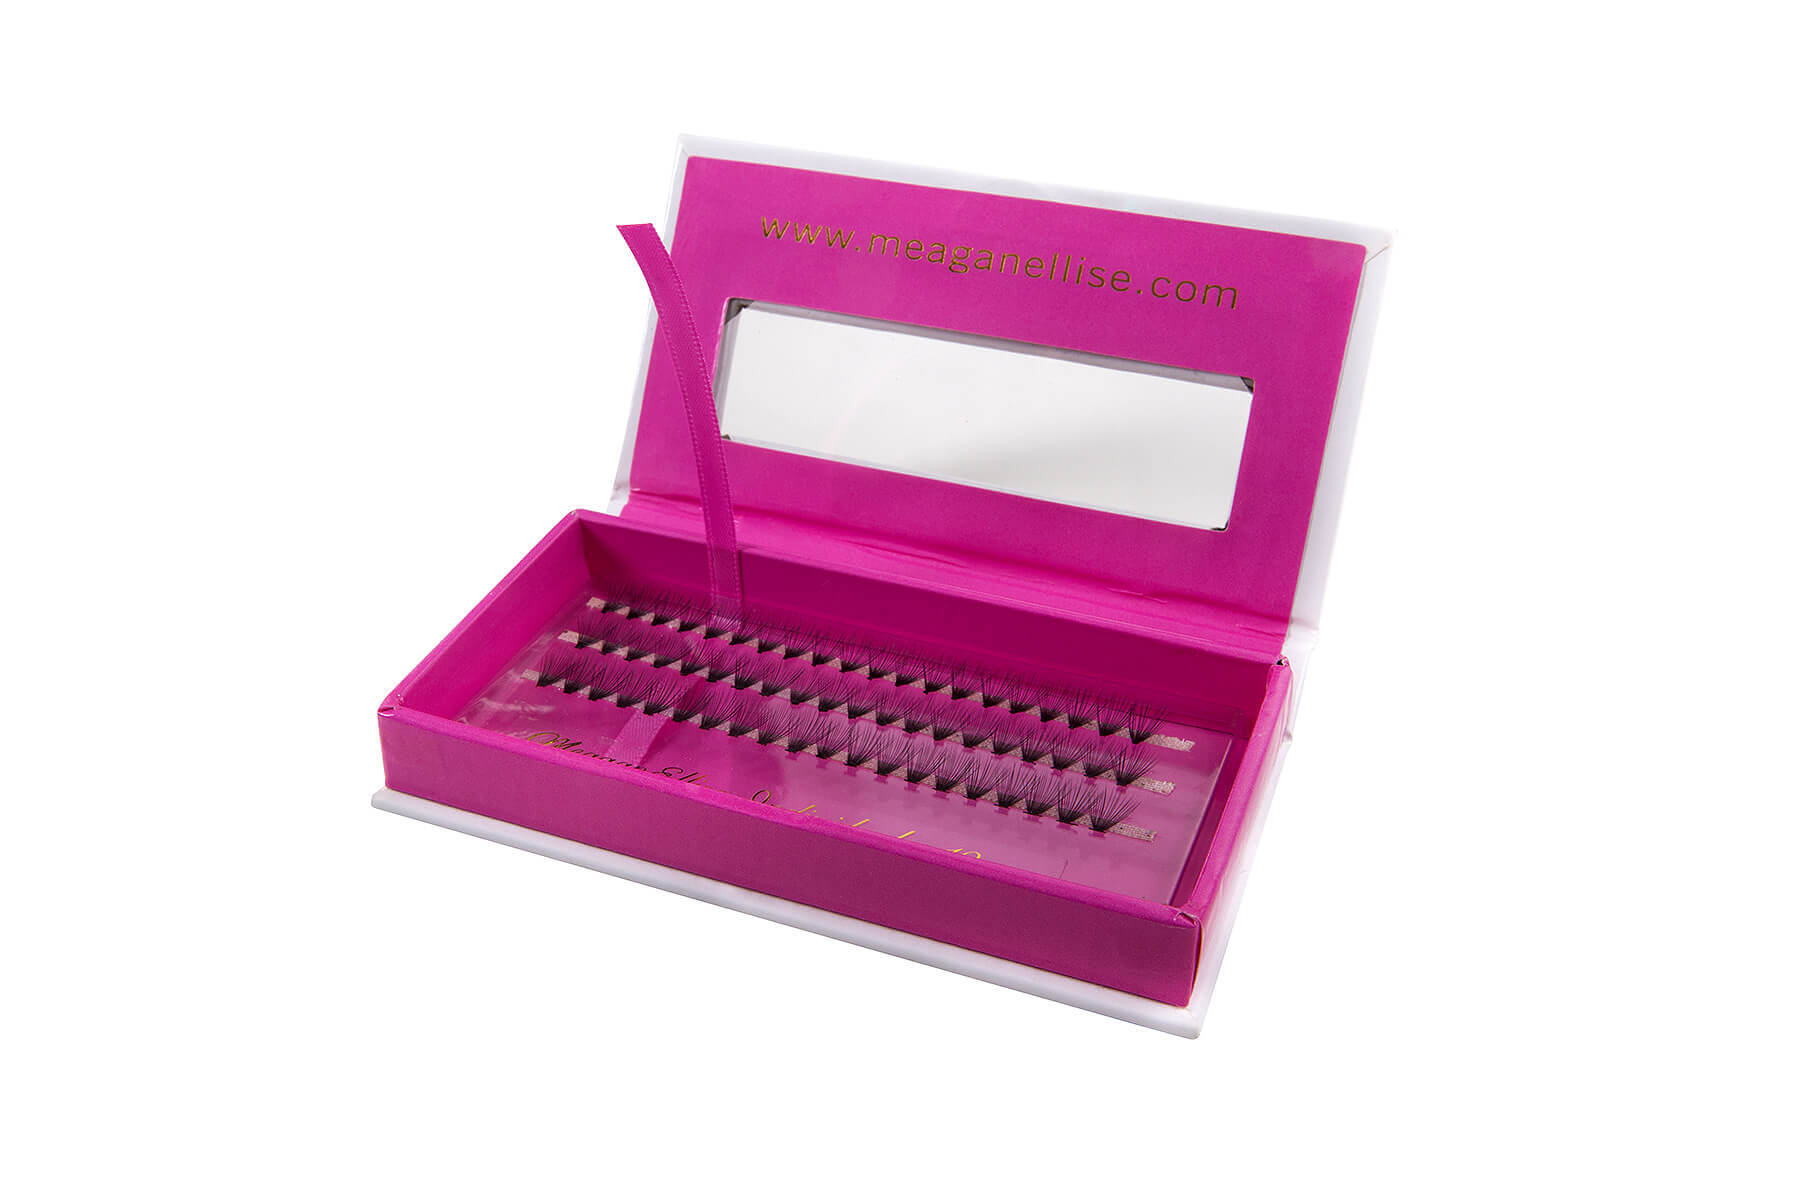 MeaganEllise Individual Eyelashes 10mm - Open Box